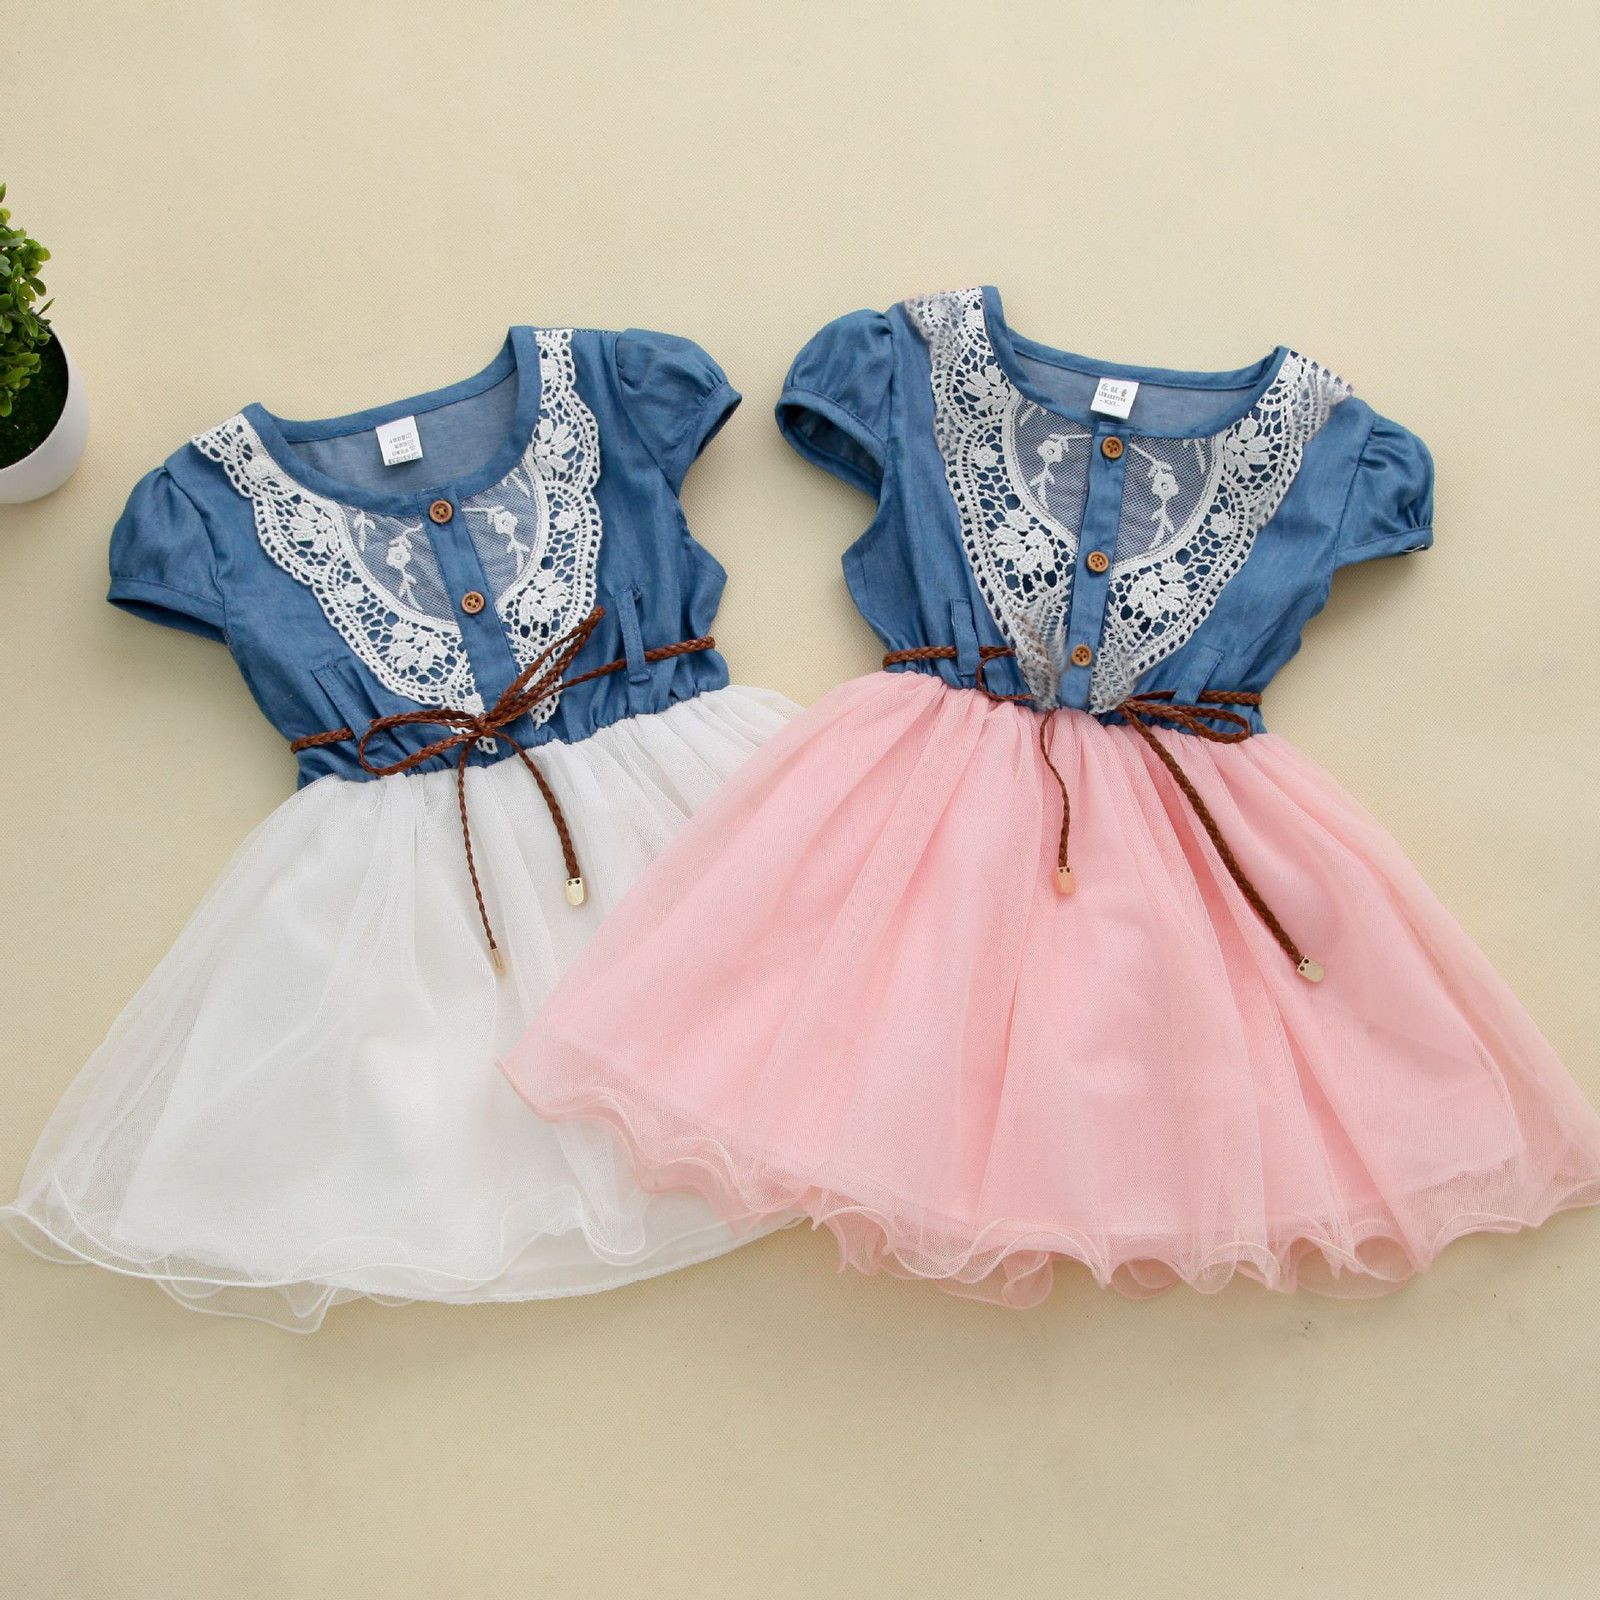 princess girls baby kids party lace belt denim tulle gown